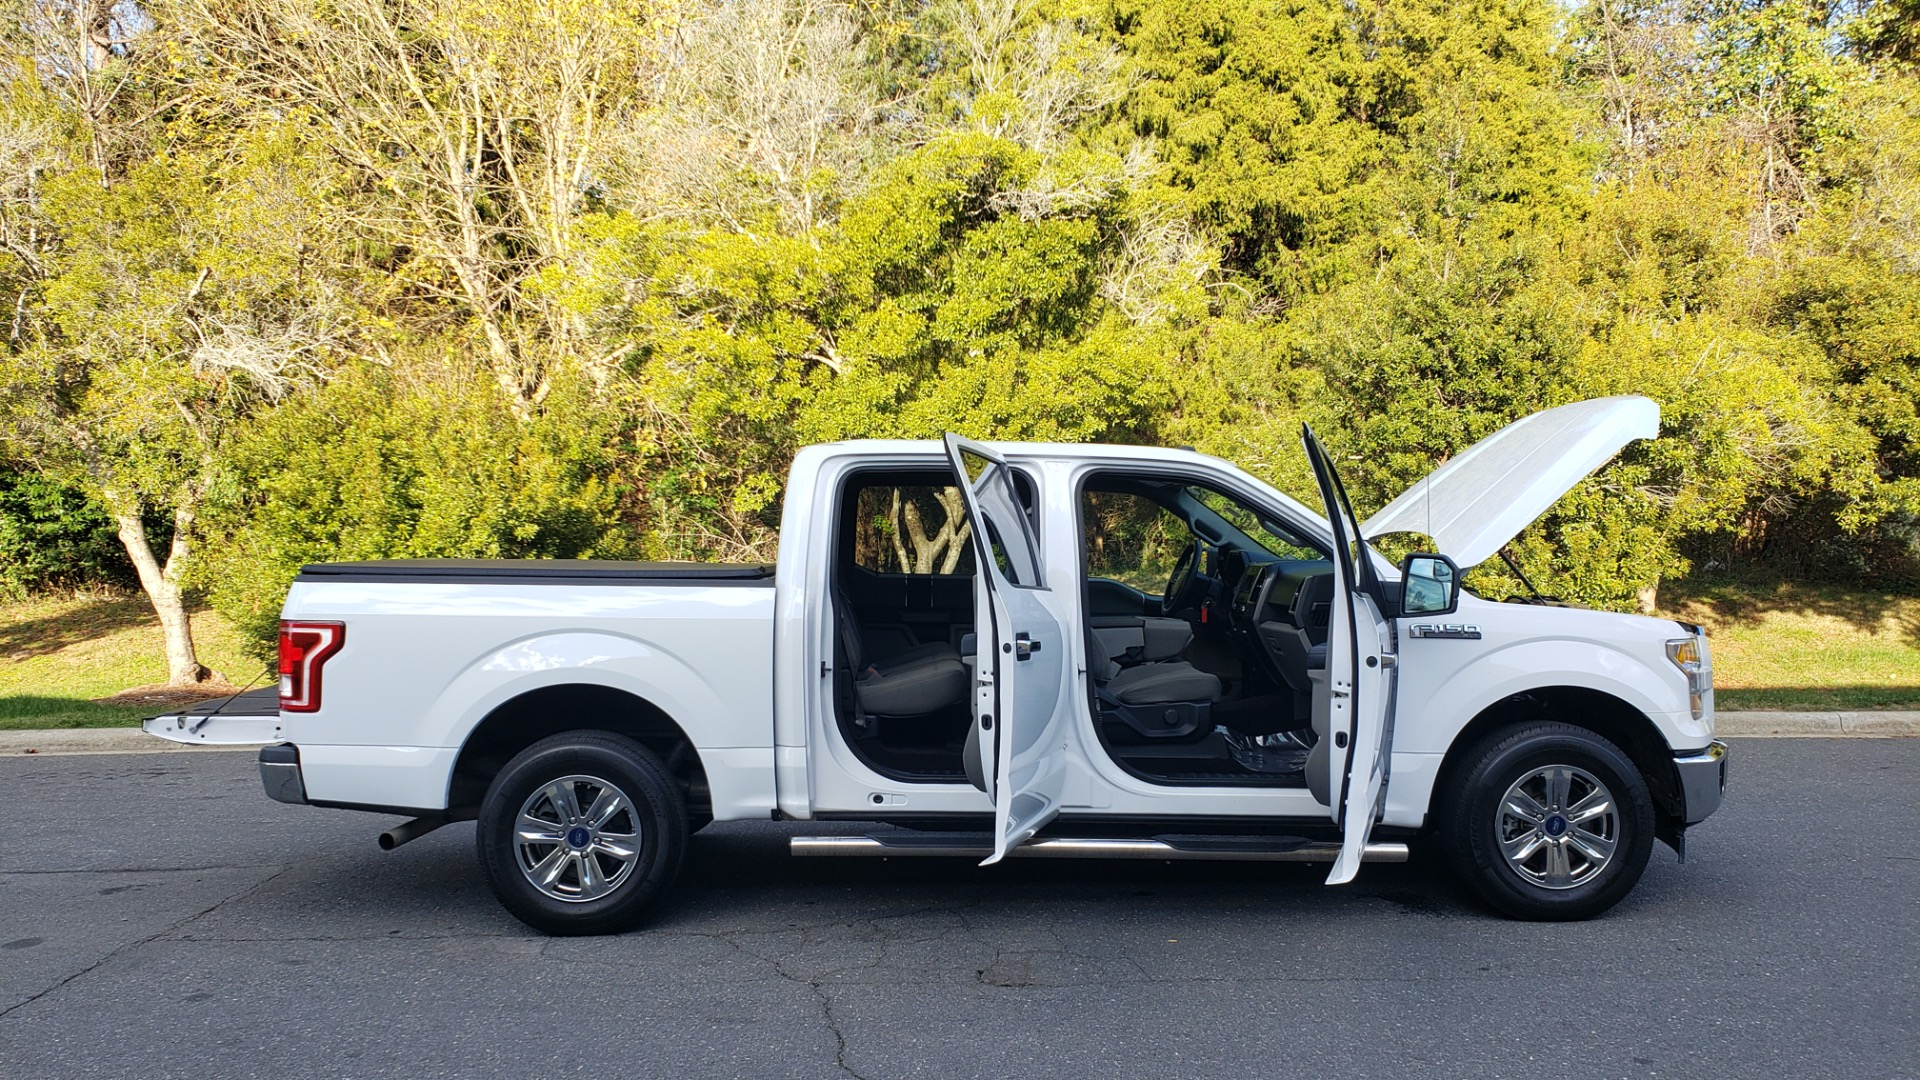 Used 2017 Ford F-150 XLT 4x2 SUPERCREW / V6 / AUTO / 145 WB / 5.6 BED for sale Sold at Formula Imports in Charlotte NC 28227 16